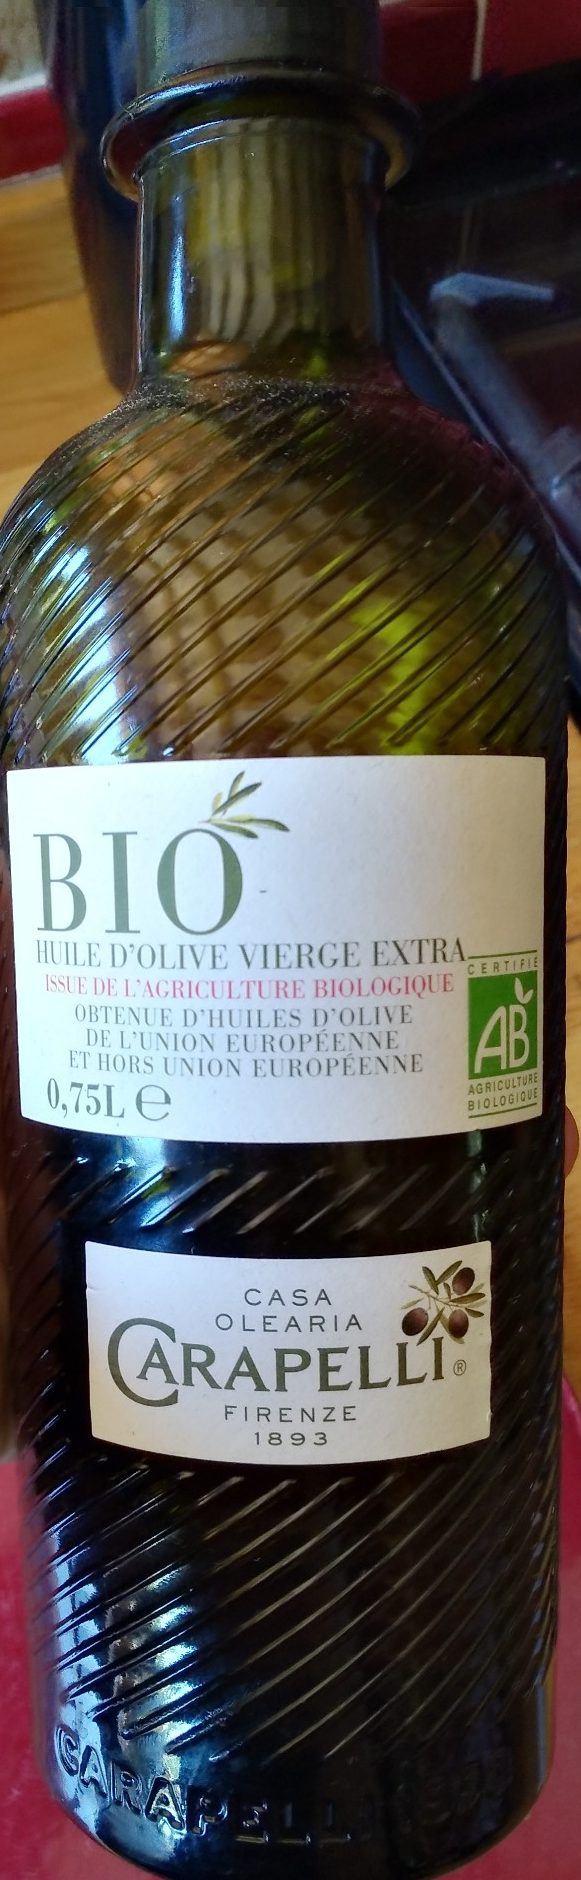 Huile d'olive bio vierge extra Carapelli - Product